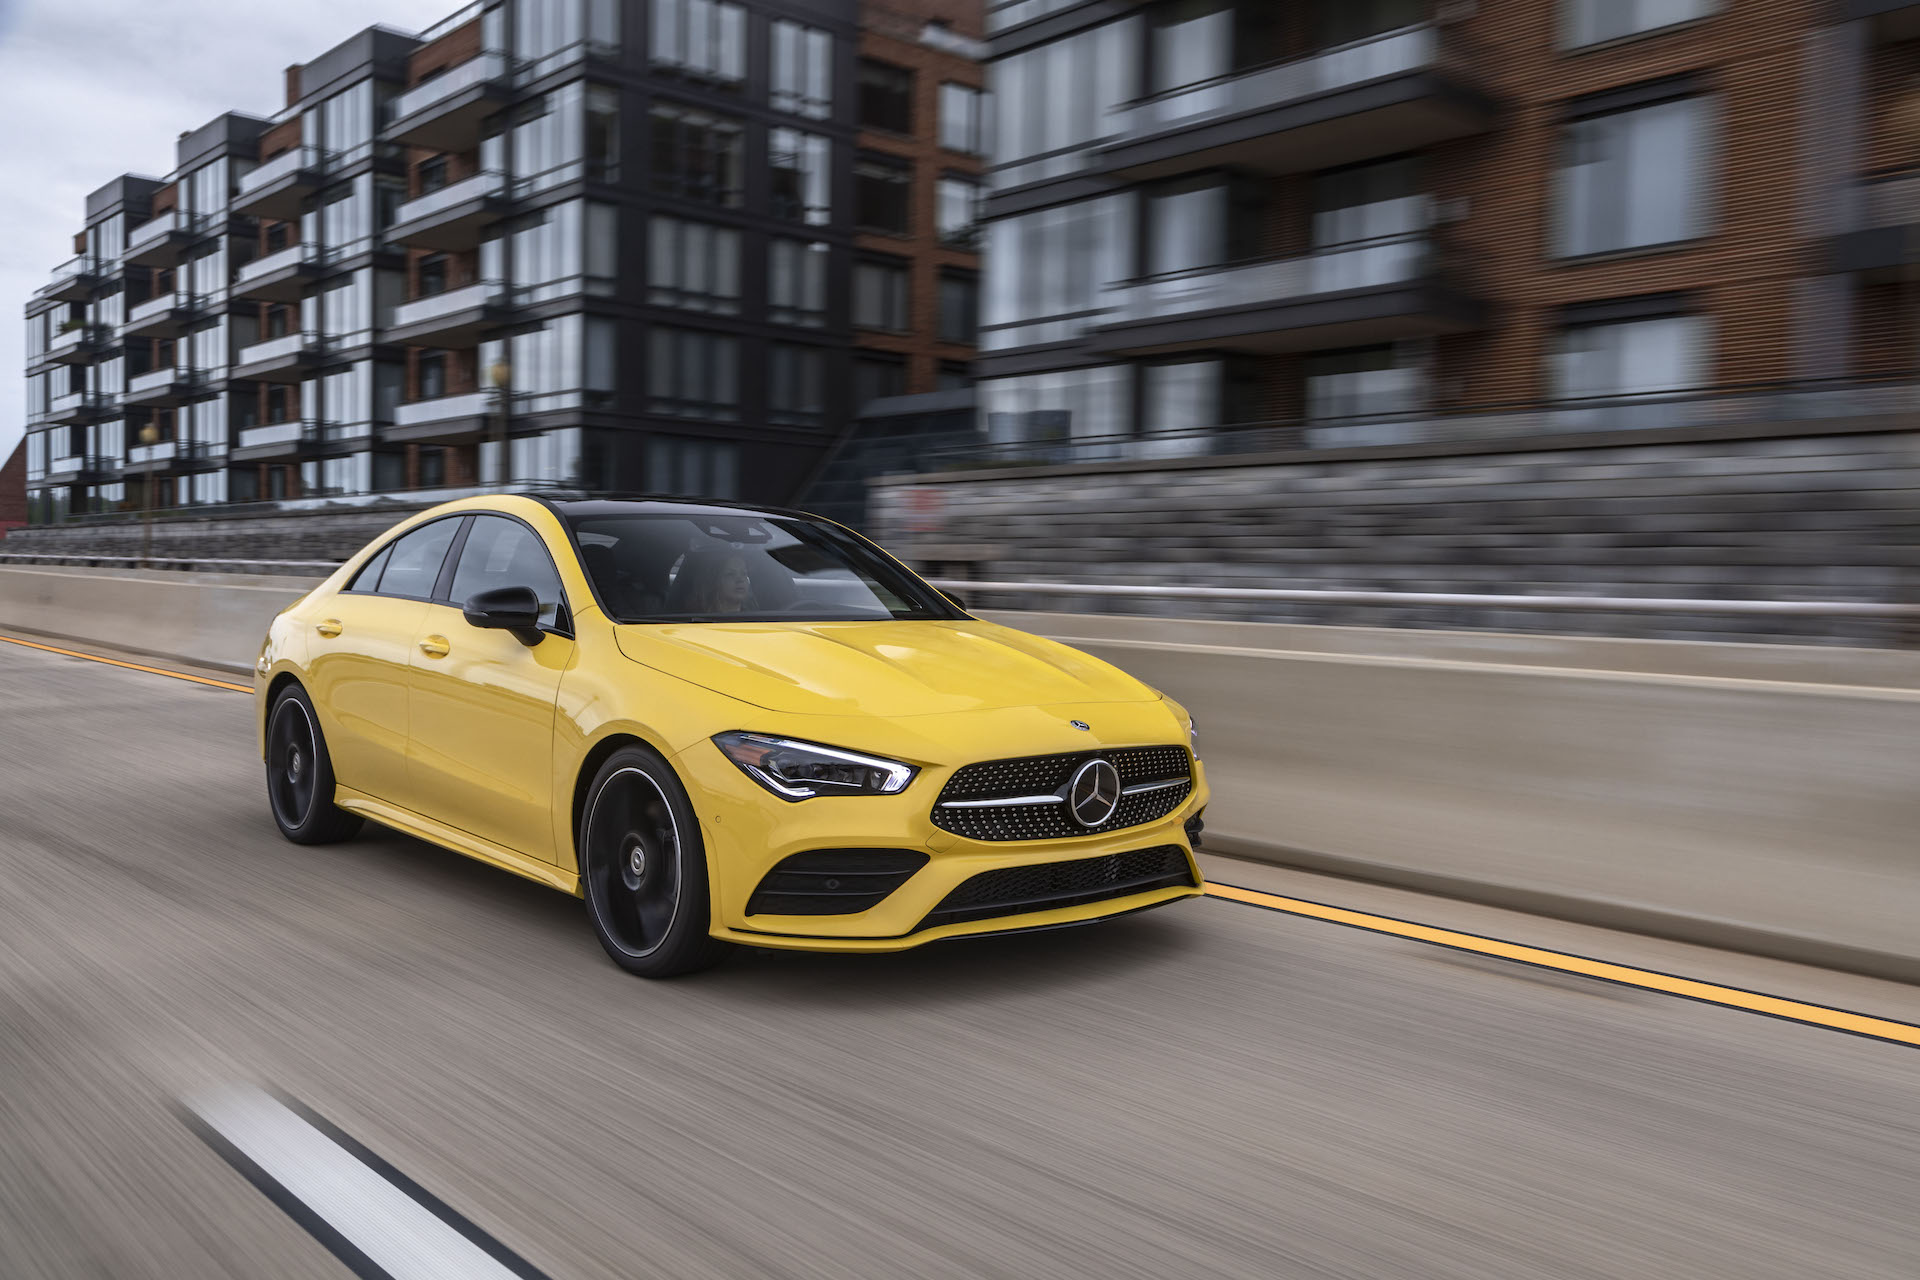 New And Used Mercedes Benz Cla Class Prices Photos Reviews Specs The Car Connection